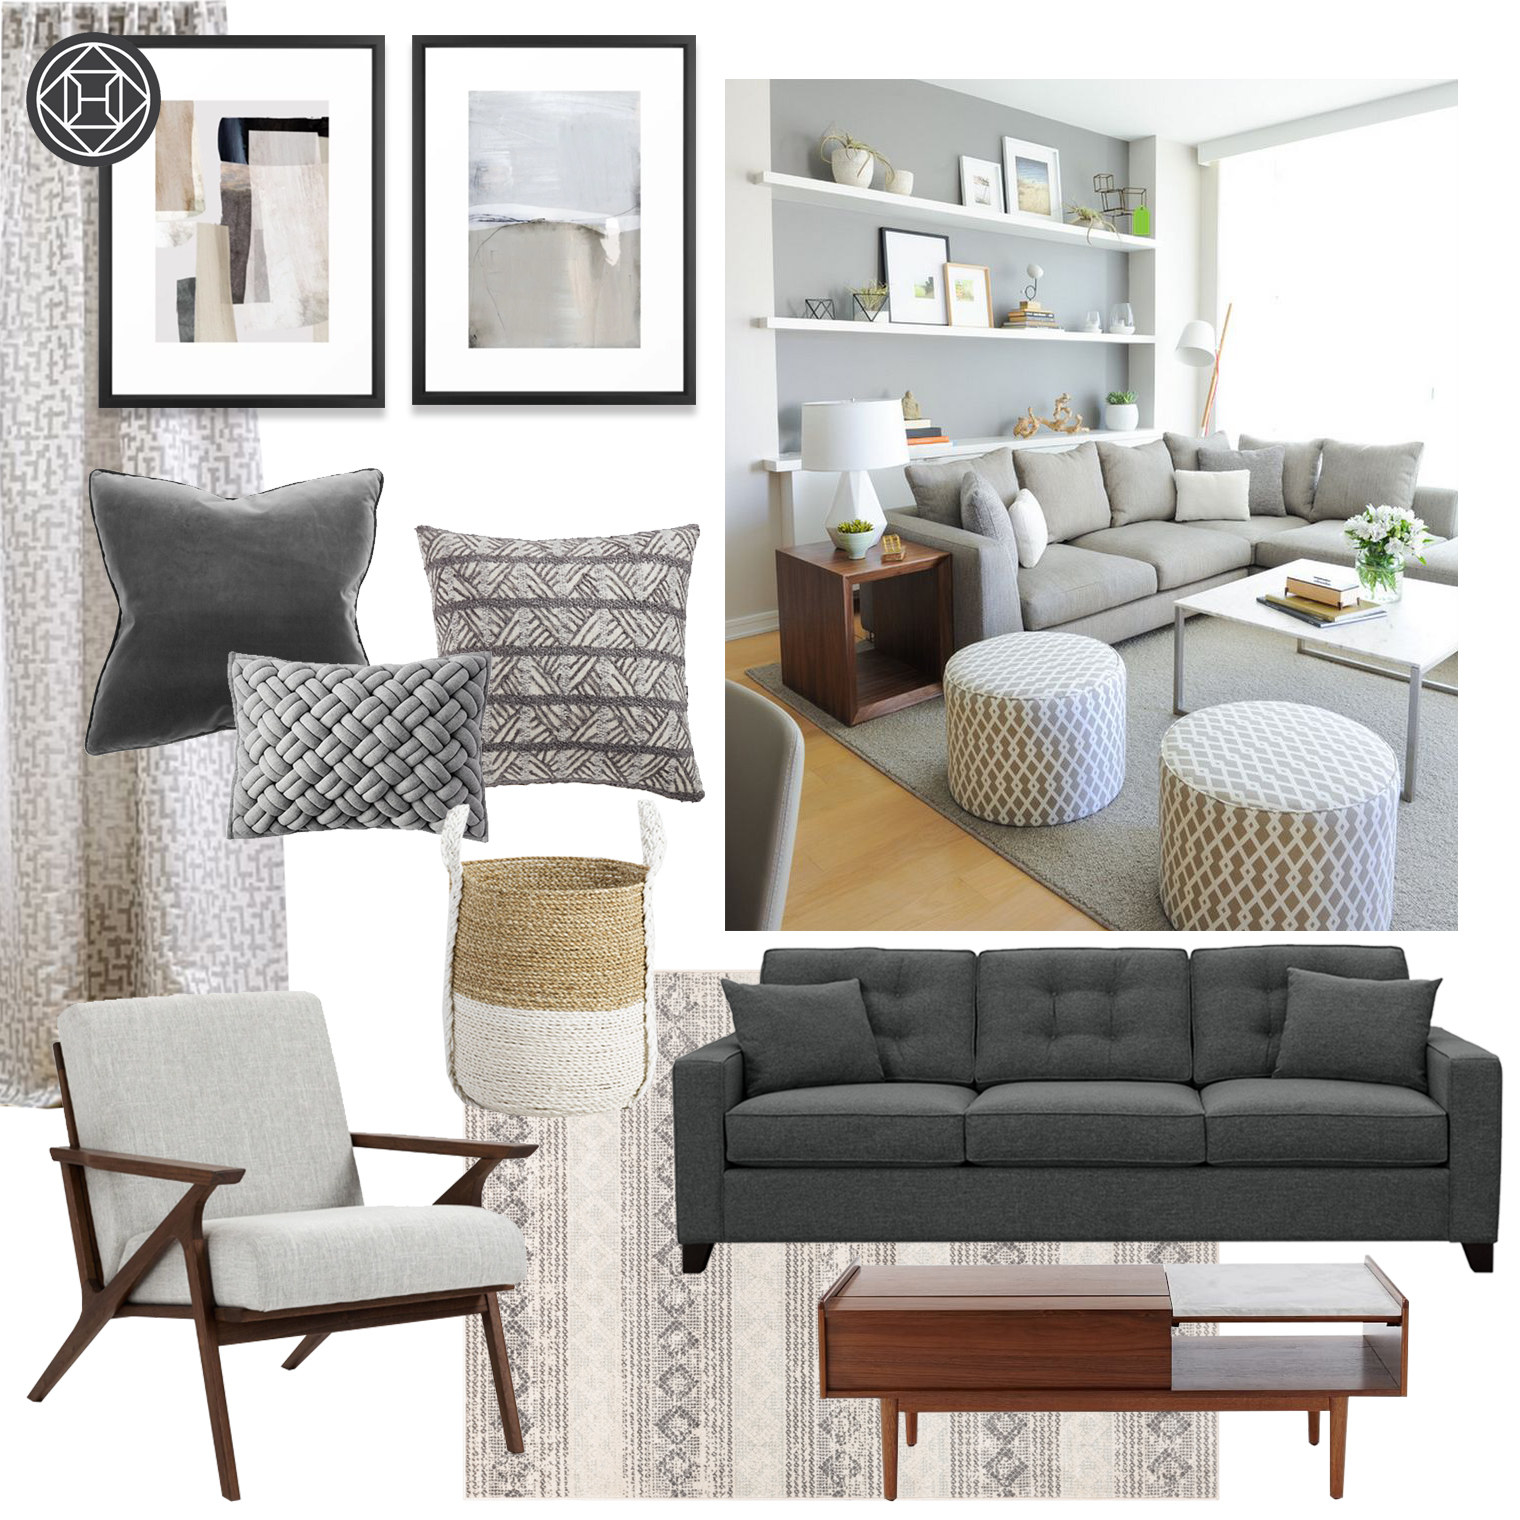 A design idea featuring a compilation of mid-century modern furniture in various gray tones.